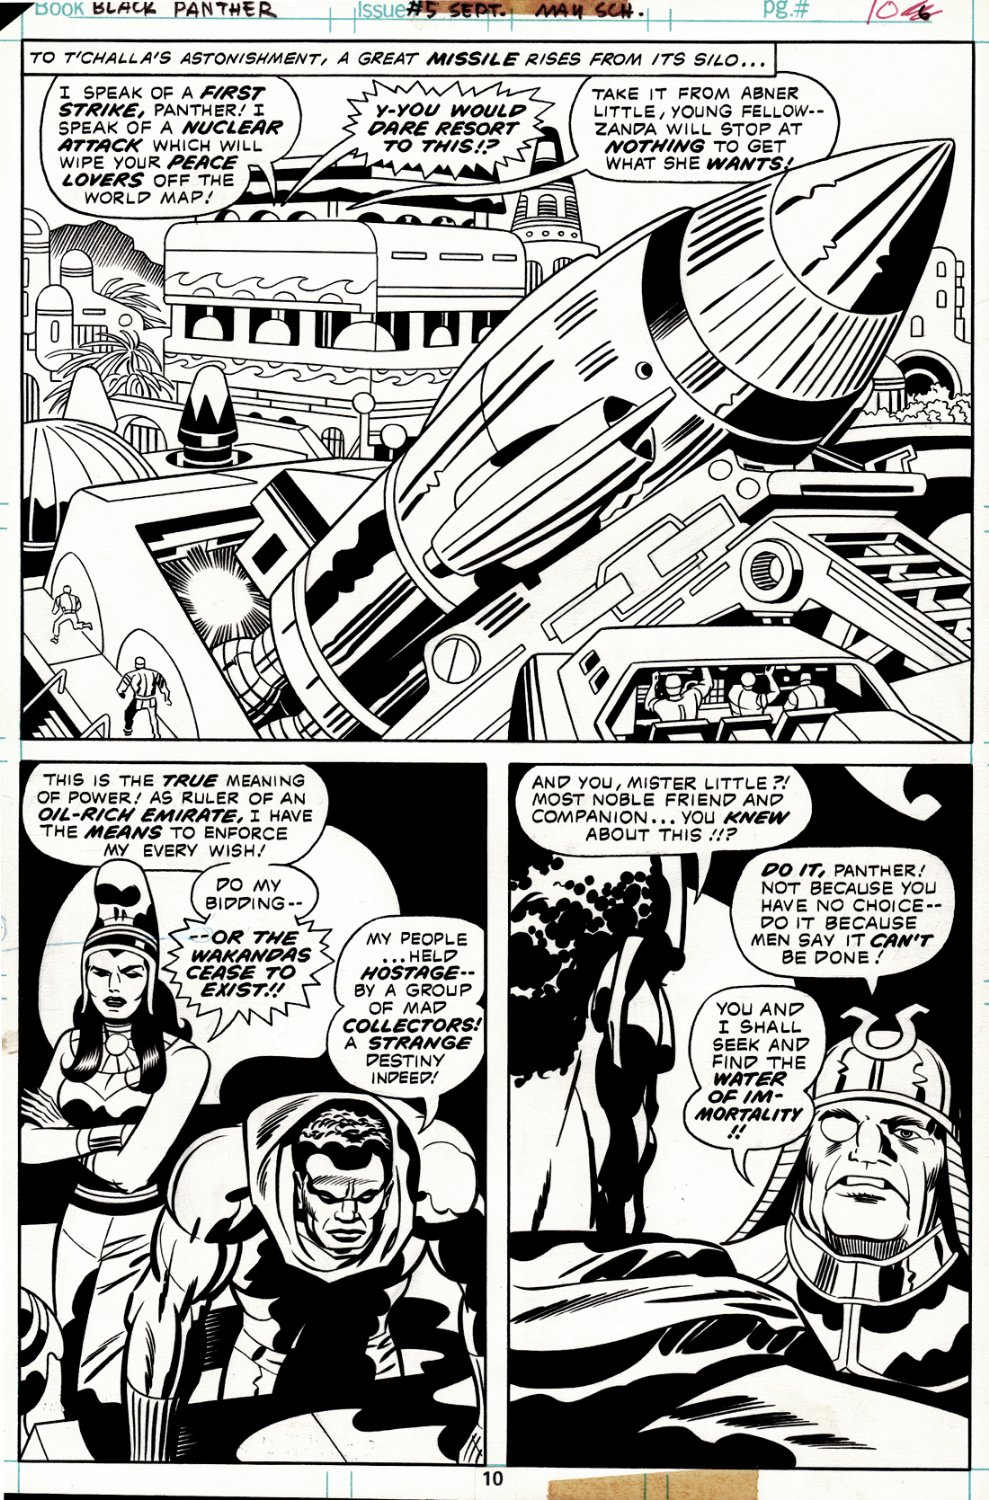 Black Panther #5 p 10 (HALF SPLASH!) 1977